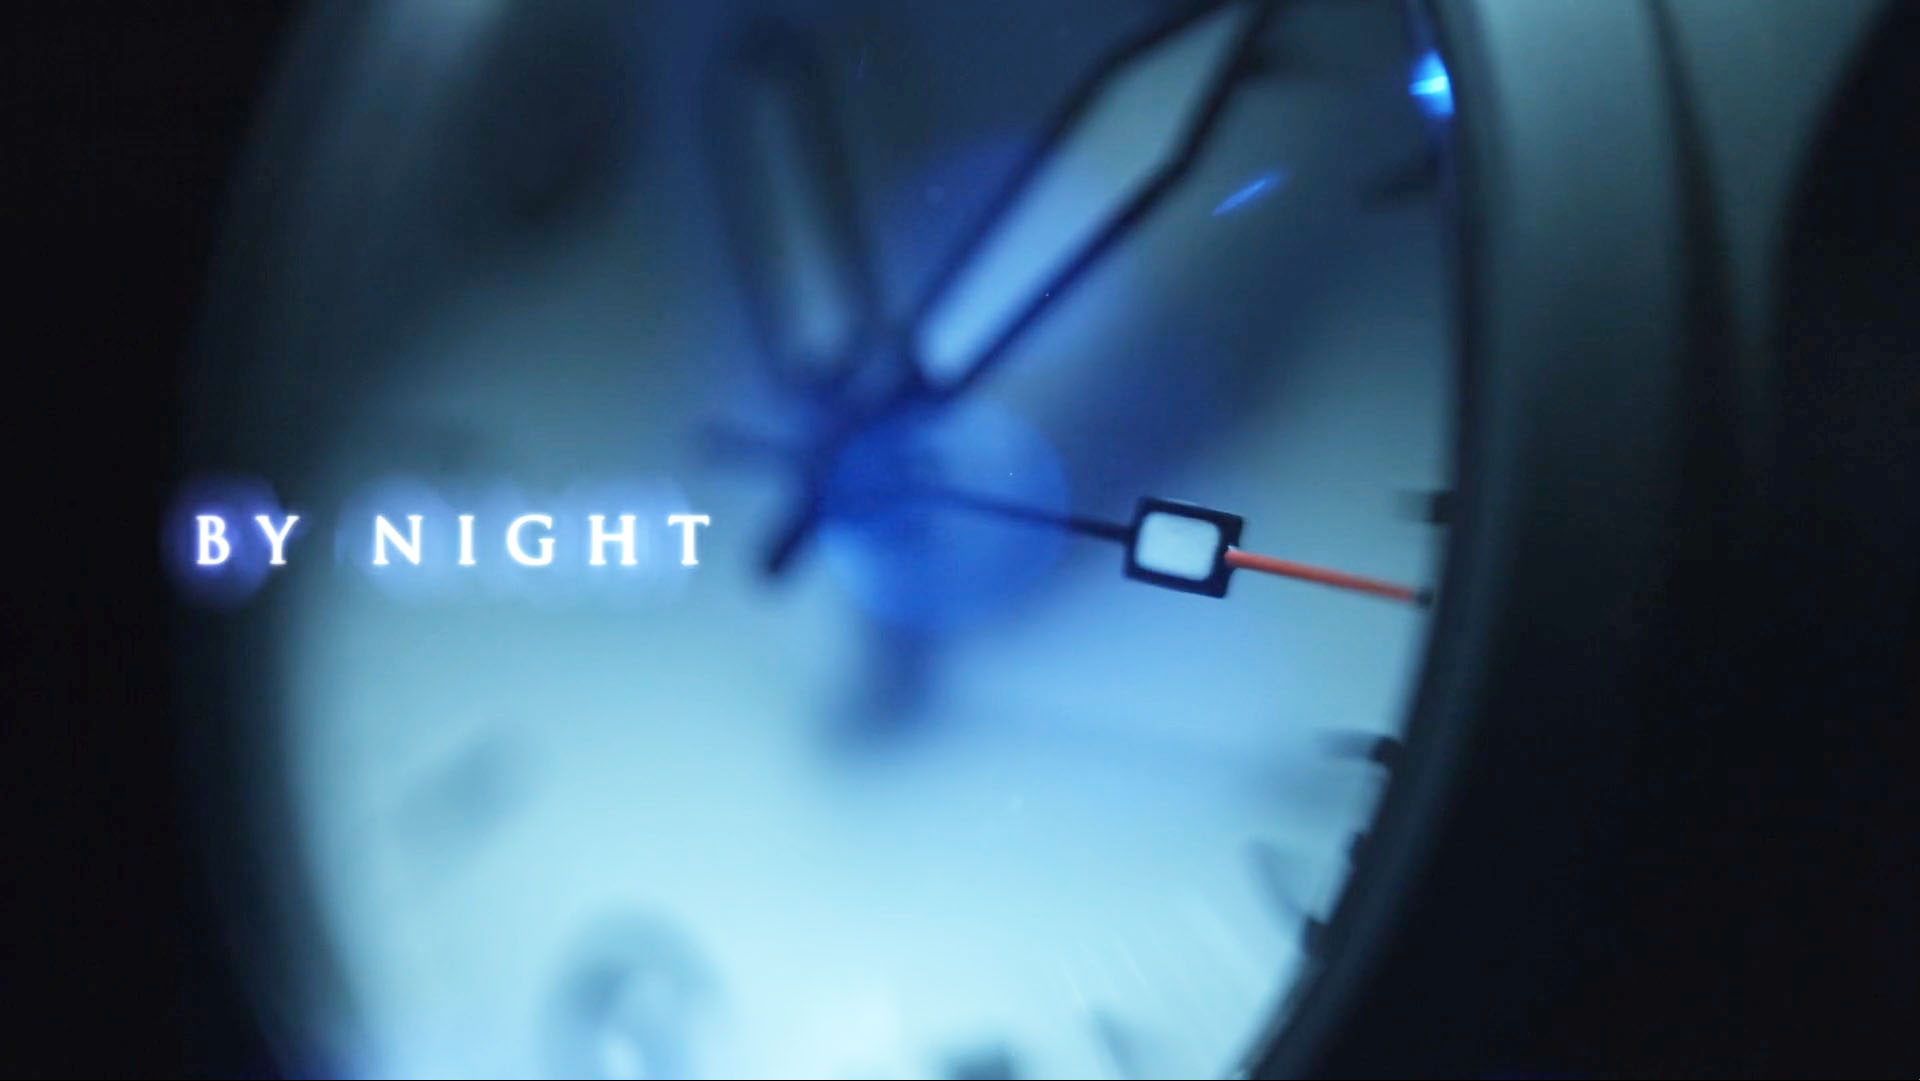 """Macro photograph of a watch face against a dark background in shades of cool blue with the text """"by night"""" superimposed."""